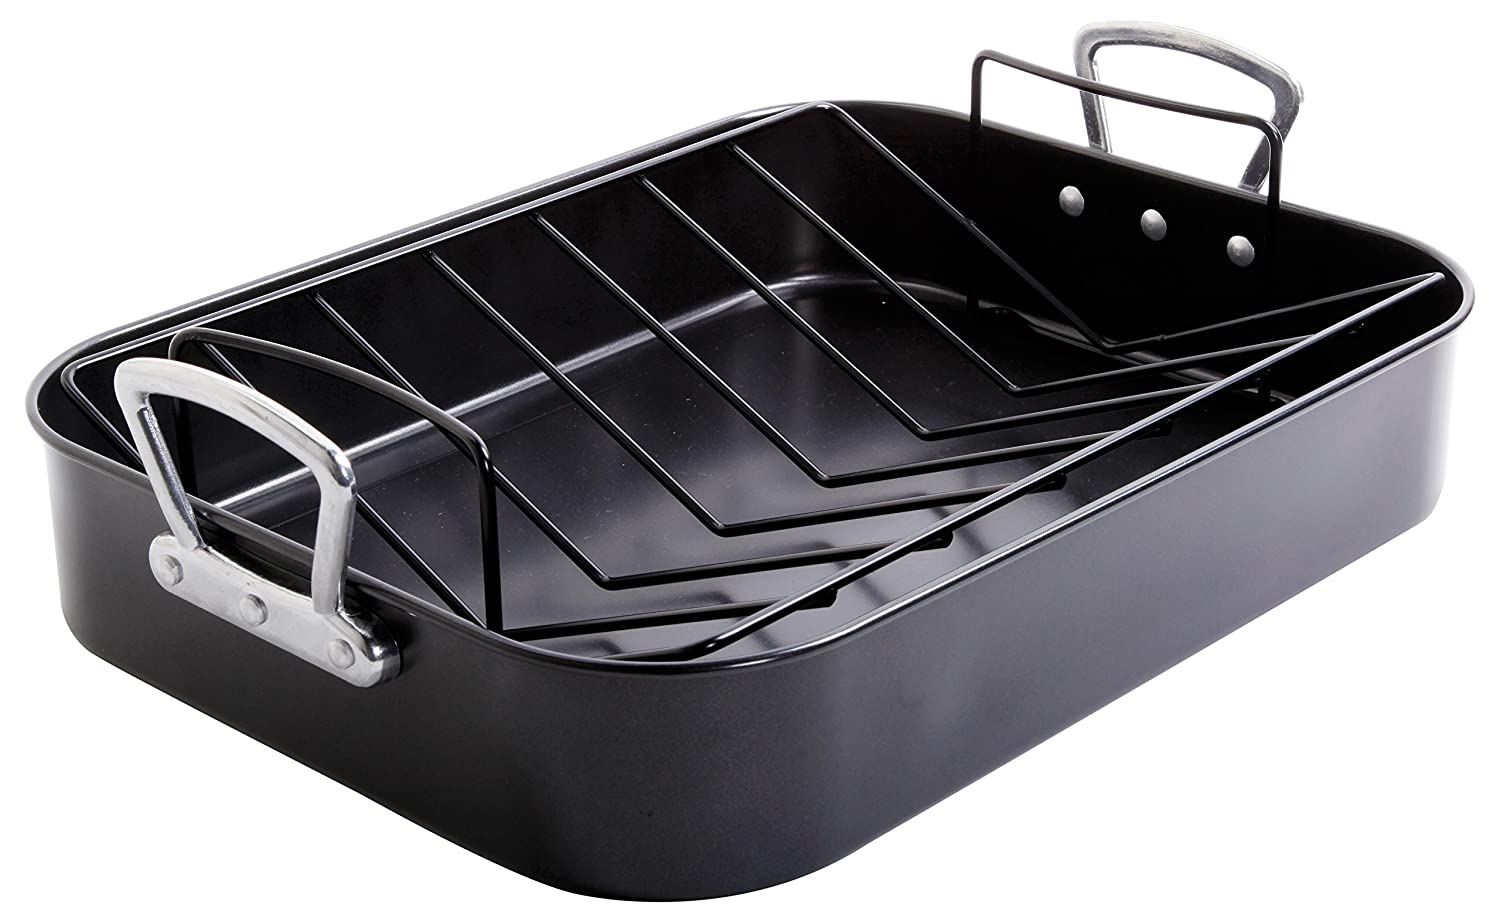 Gibson Home 89134.02 Broxton 2 Piece Non-Stick Turkey Roaster, Black